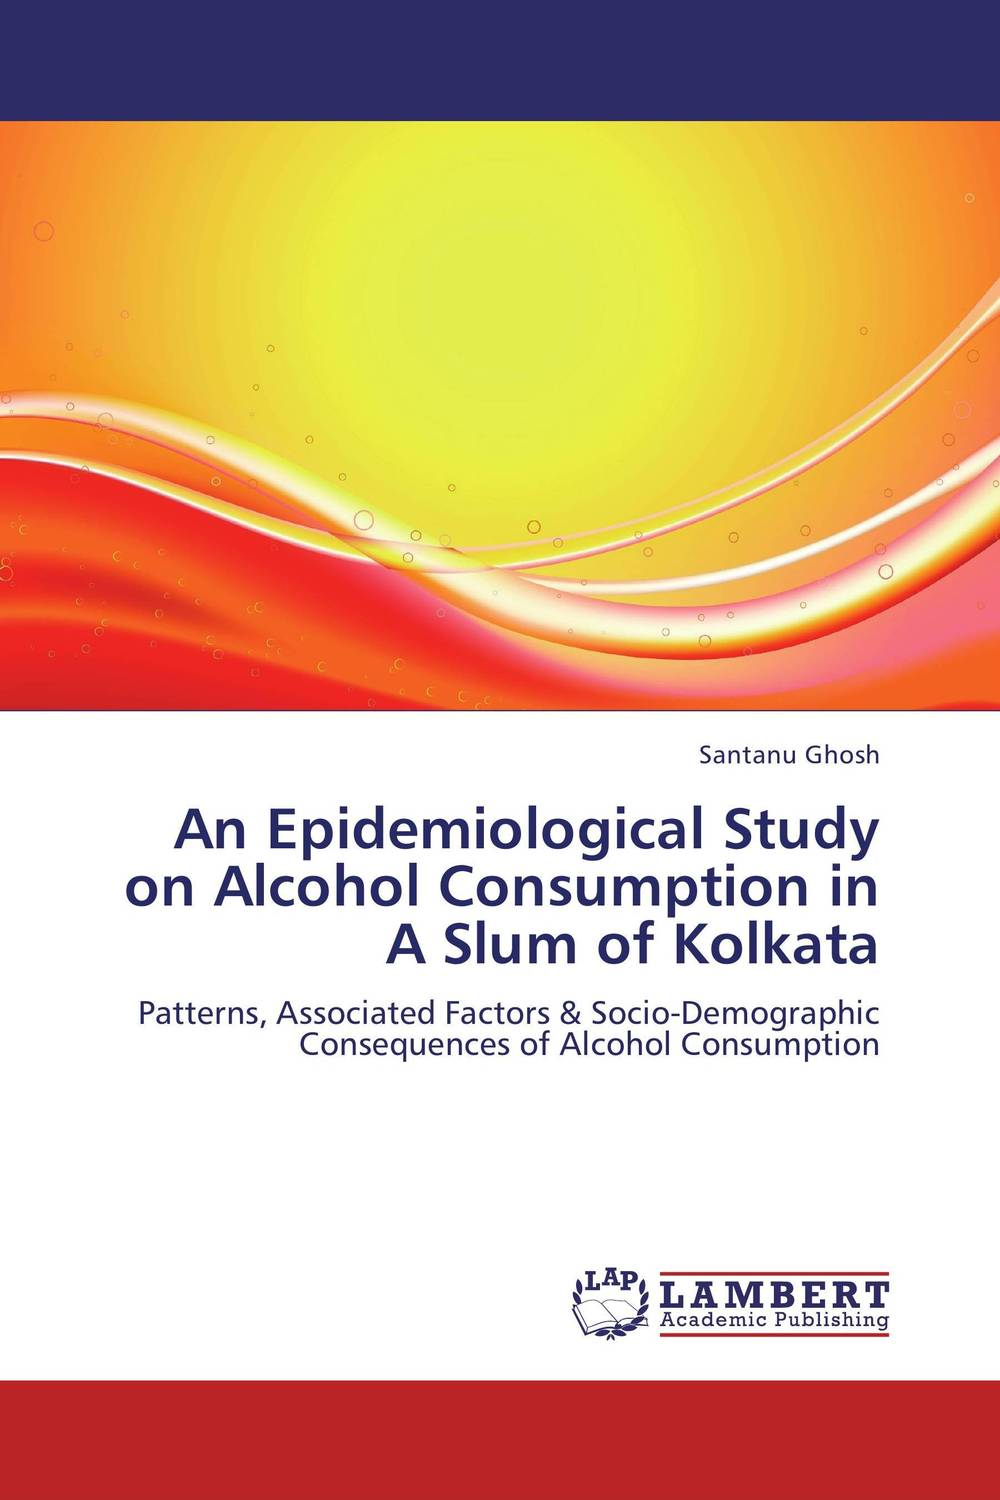 An Epidemiological Study on Alcohol Consumption in A Slum of Kolkata getachew alebie epidemiological study on schistosoma mansoni infection